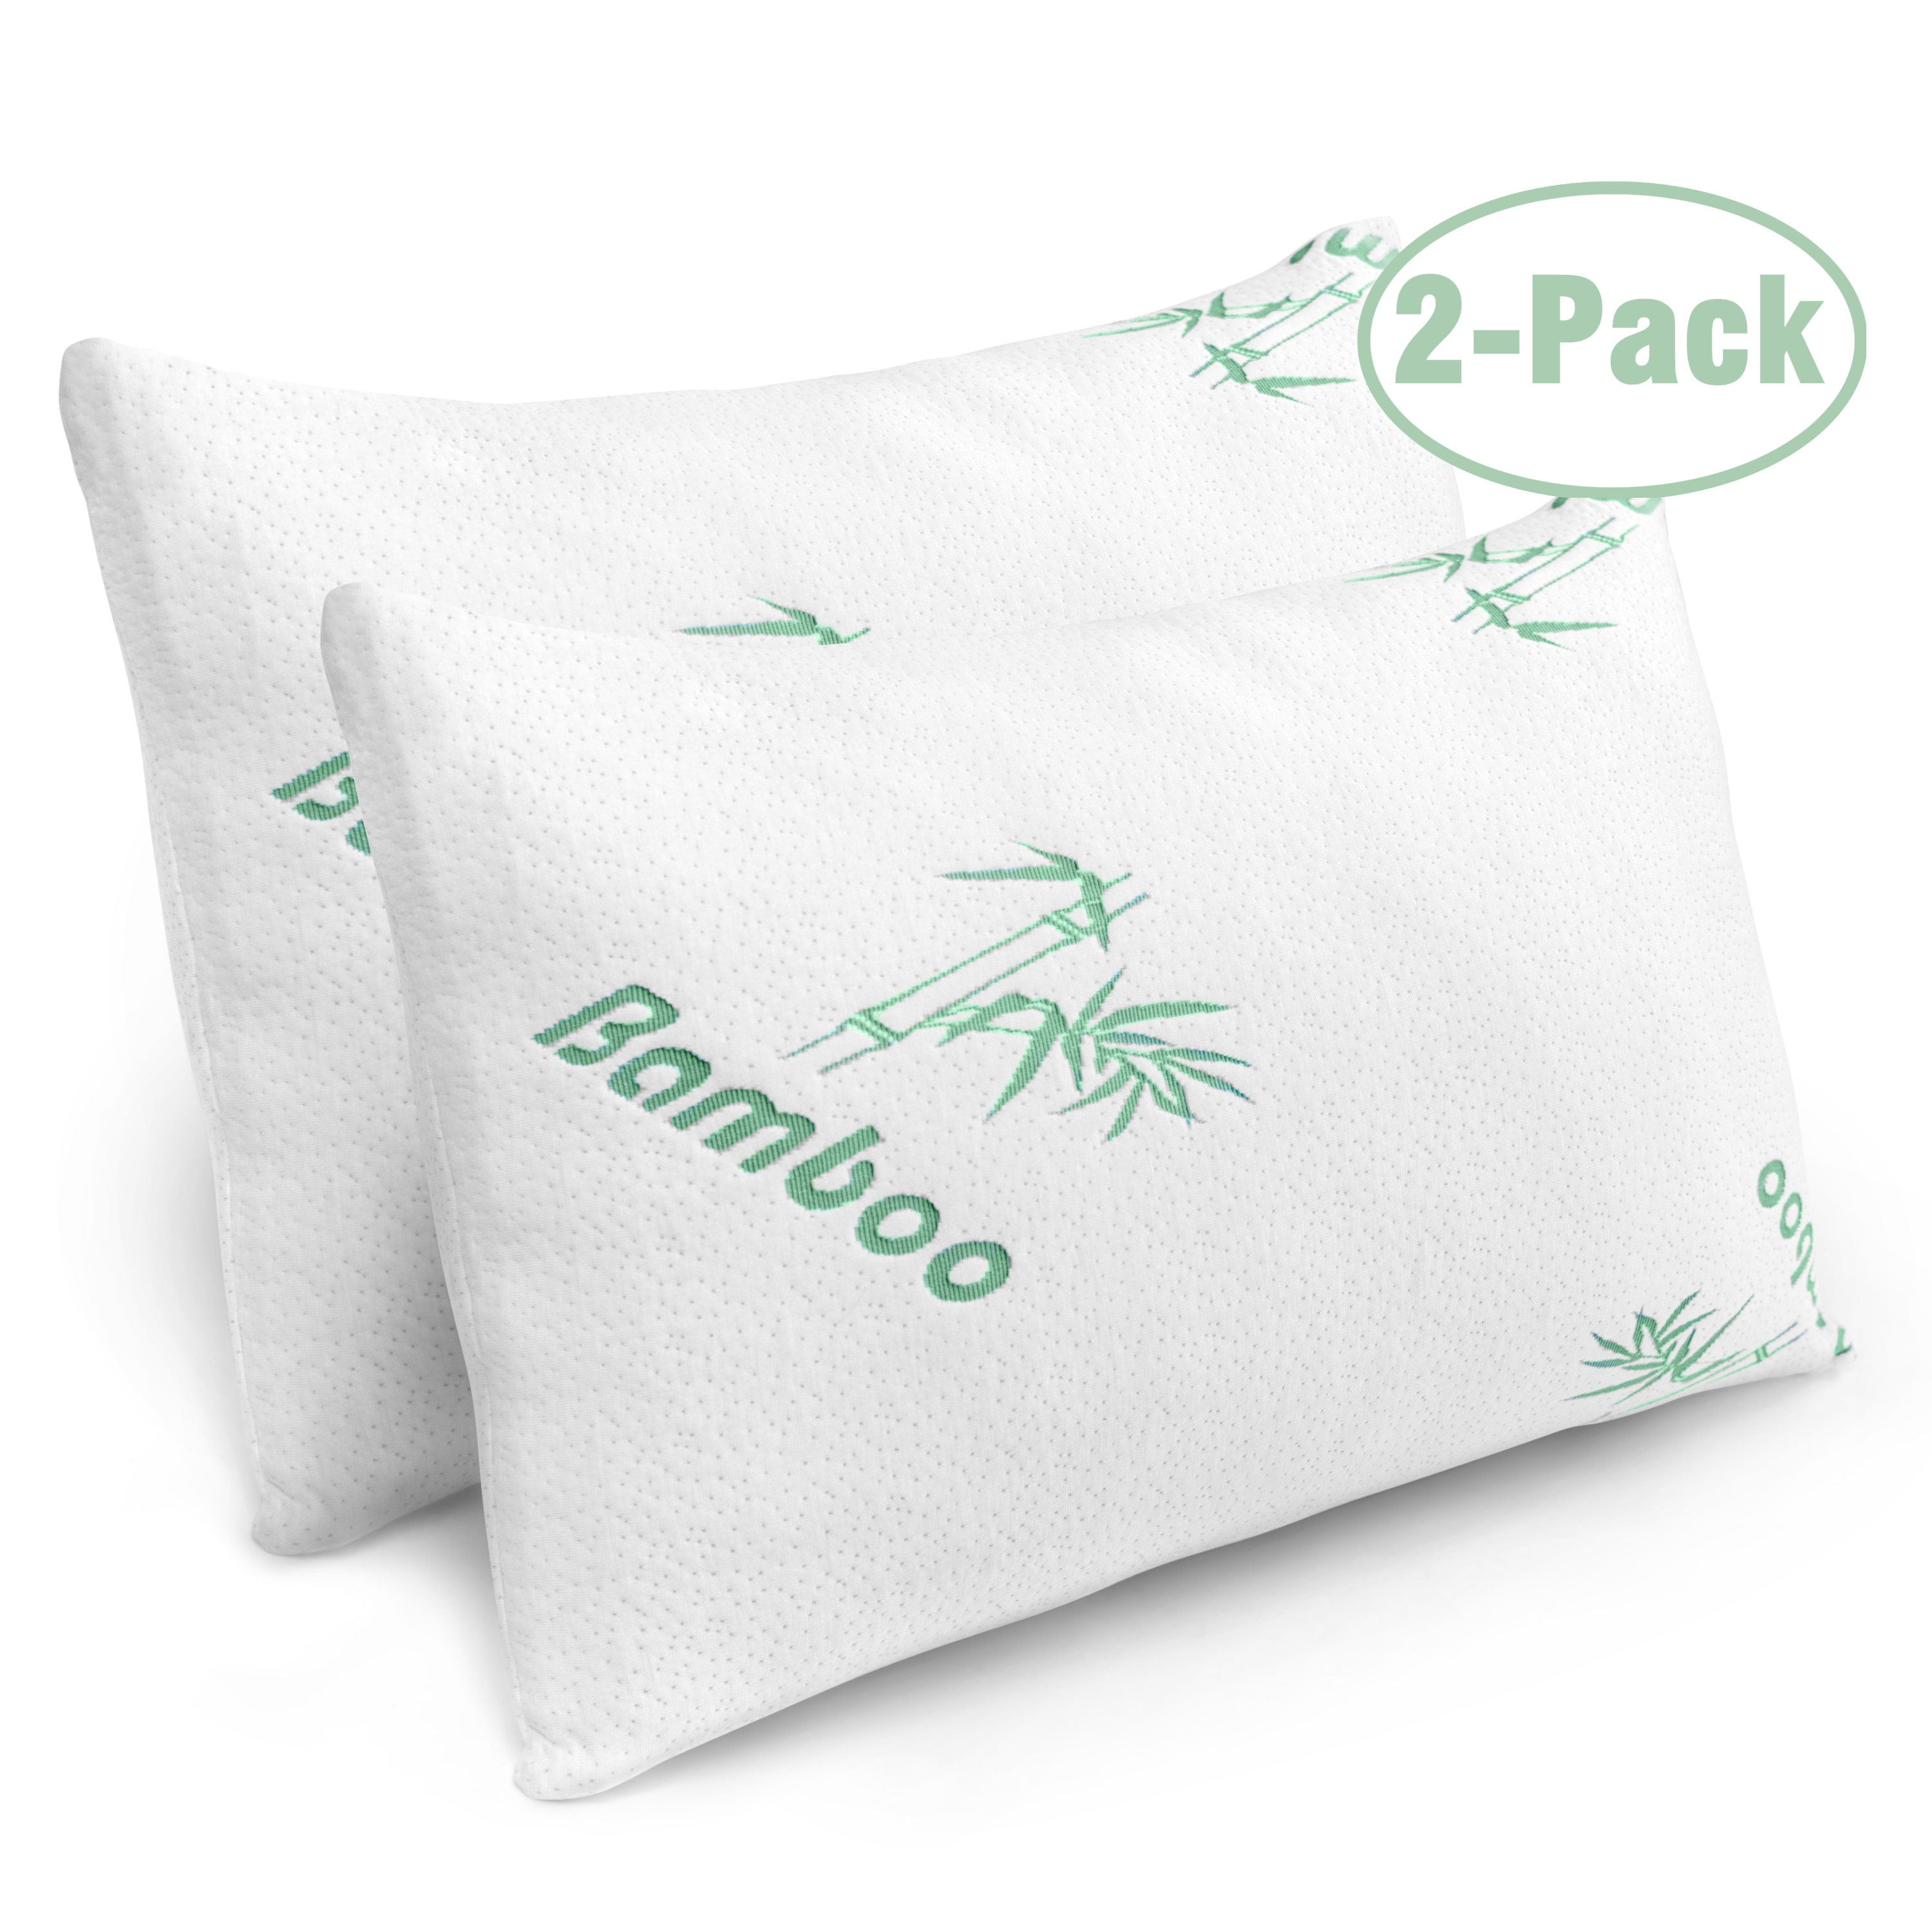 2 pack plixio shredded memory foam pillow with cooling hypoallergenic cover queen size bed pillows for sleeping walmart com